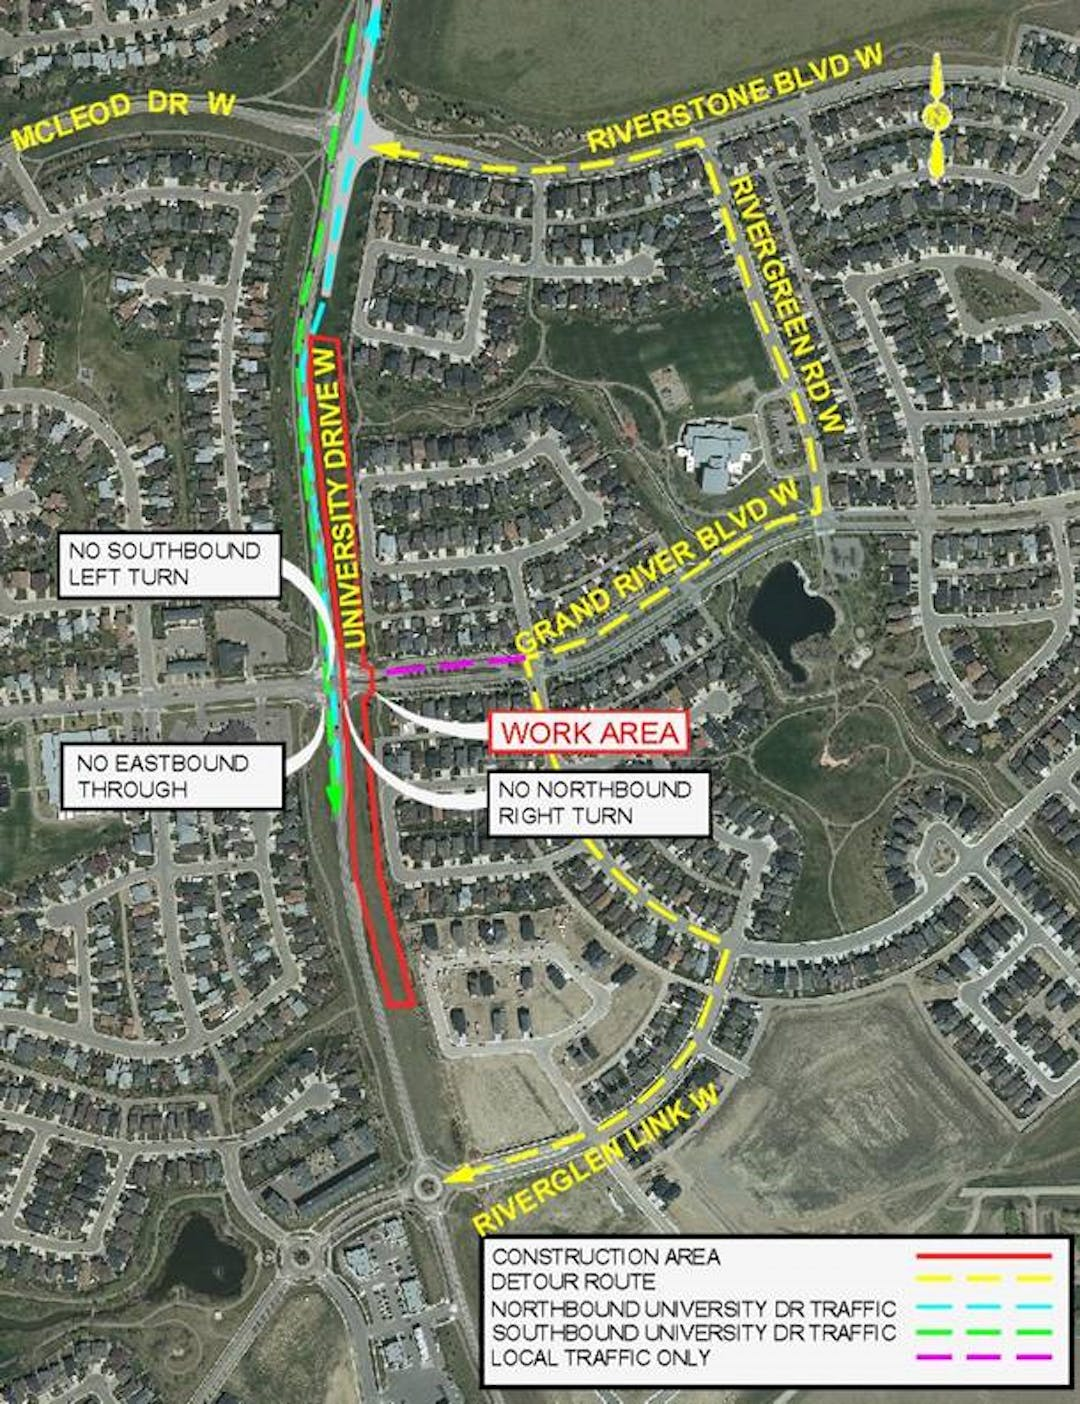 Detour map for Phase 4 - Closure of Grand River Blvd West